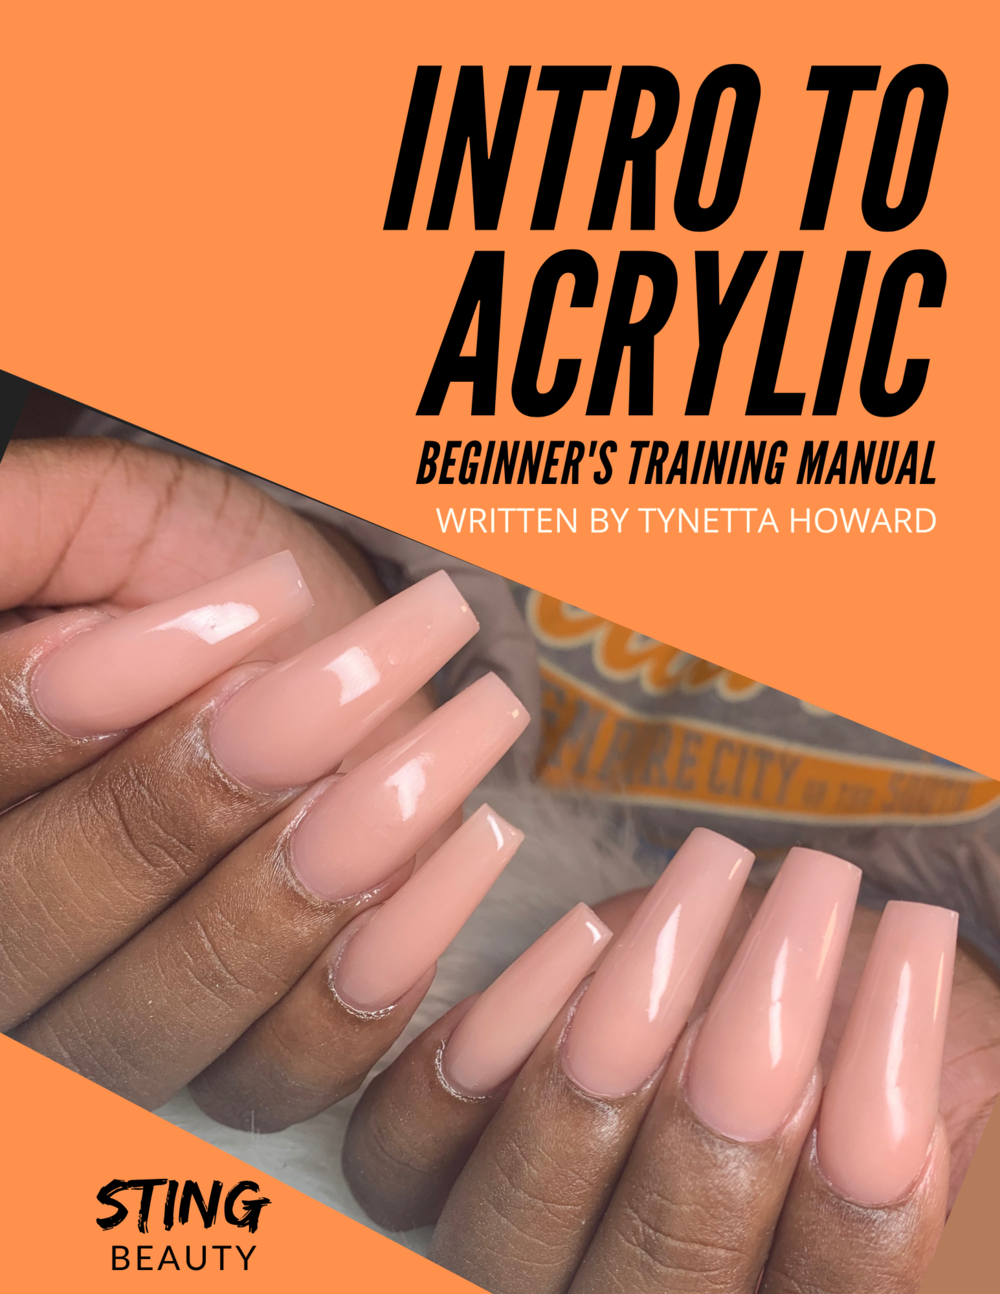 Intro to Acrylic Training Manual